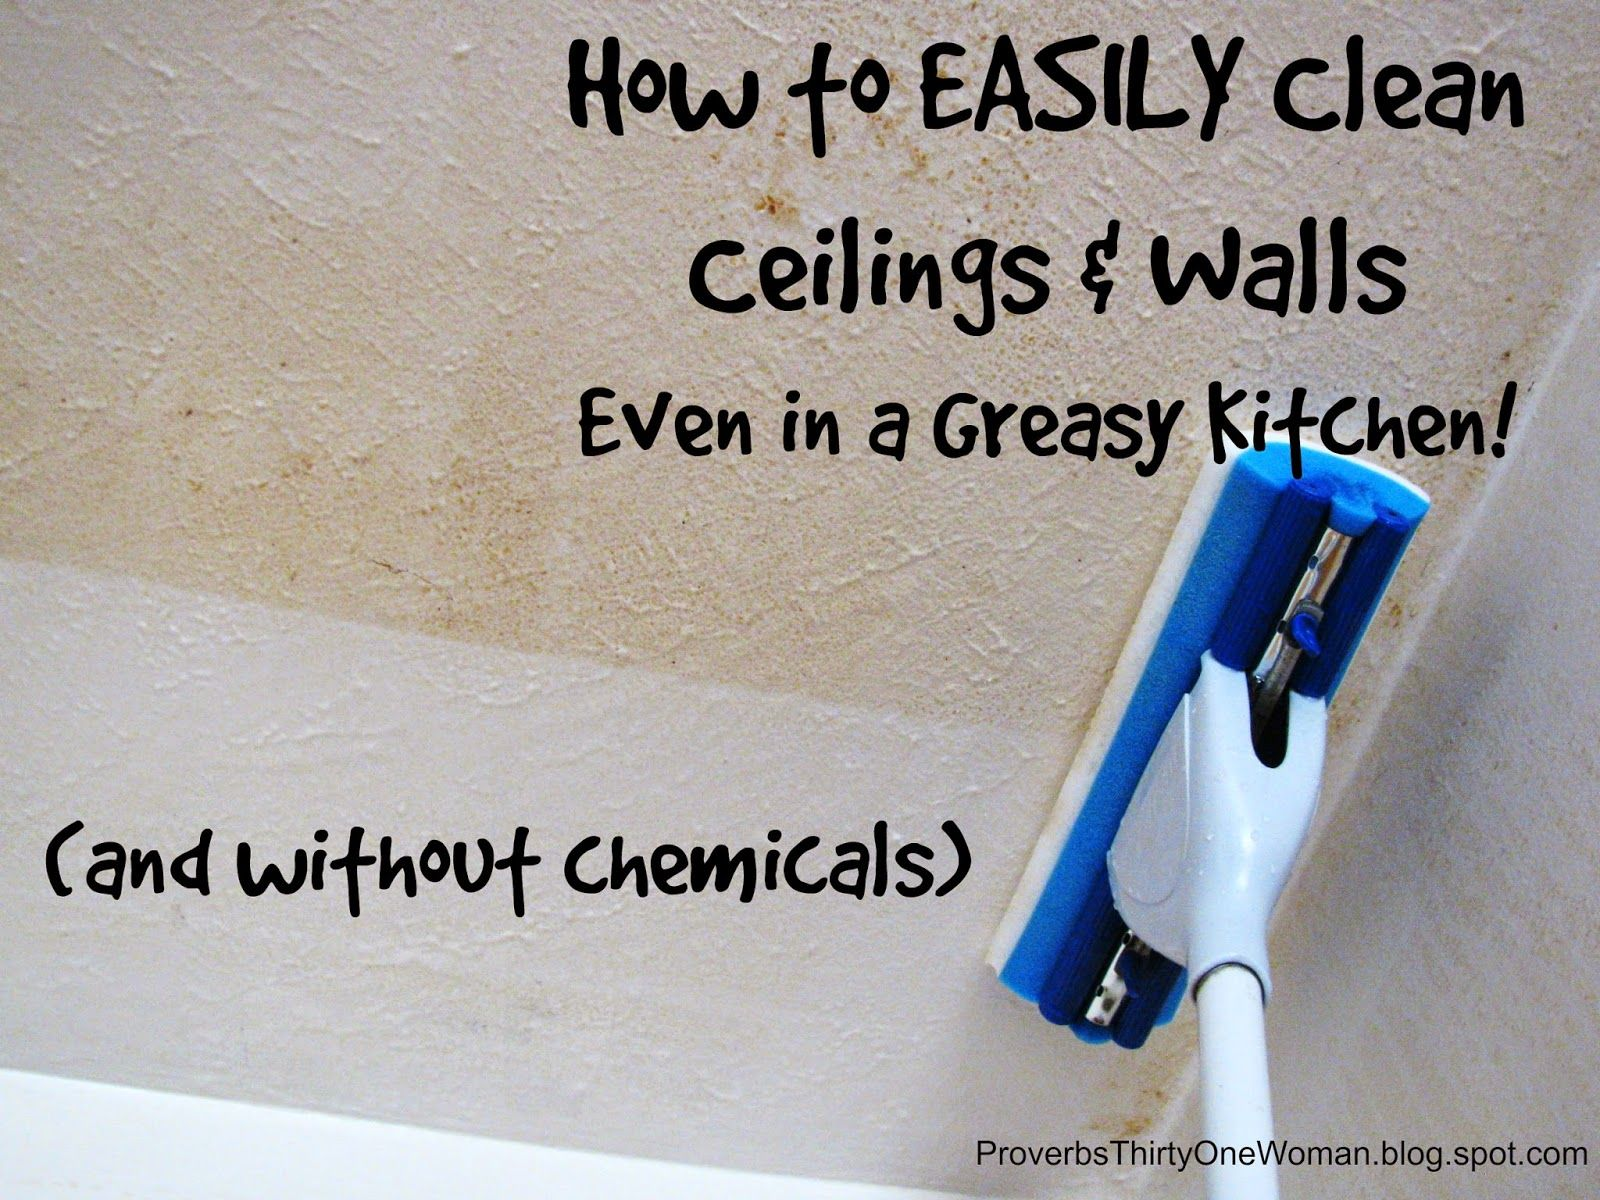 how to easily clean ceilings walls even in a greasy kitchen